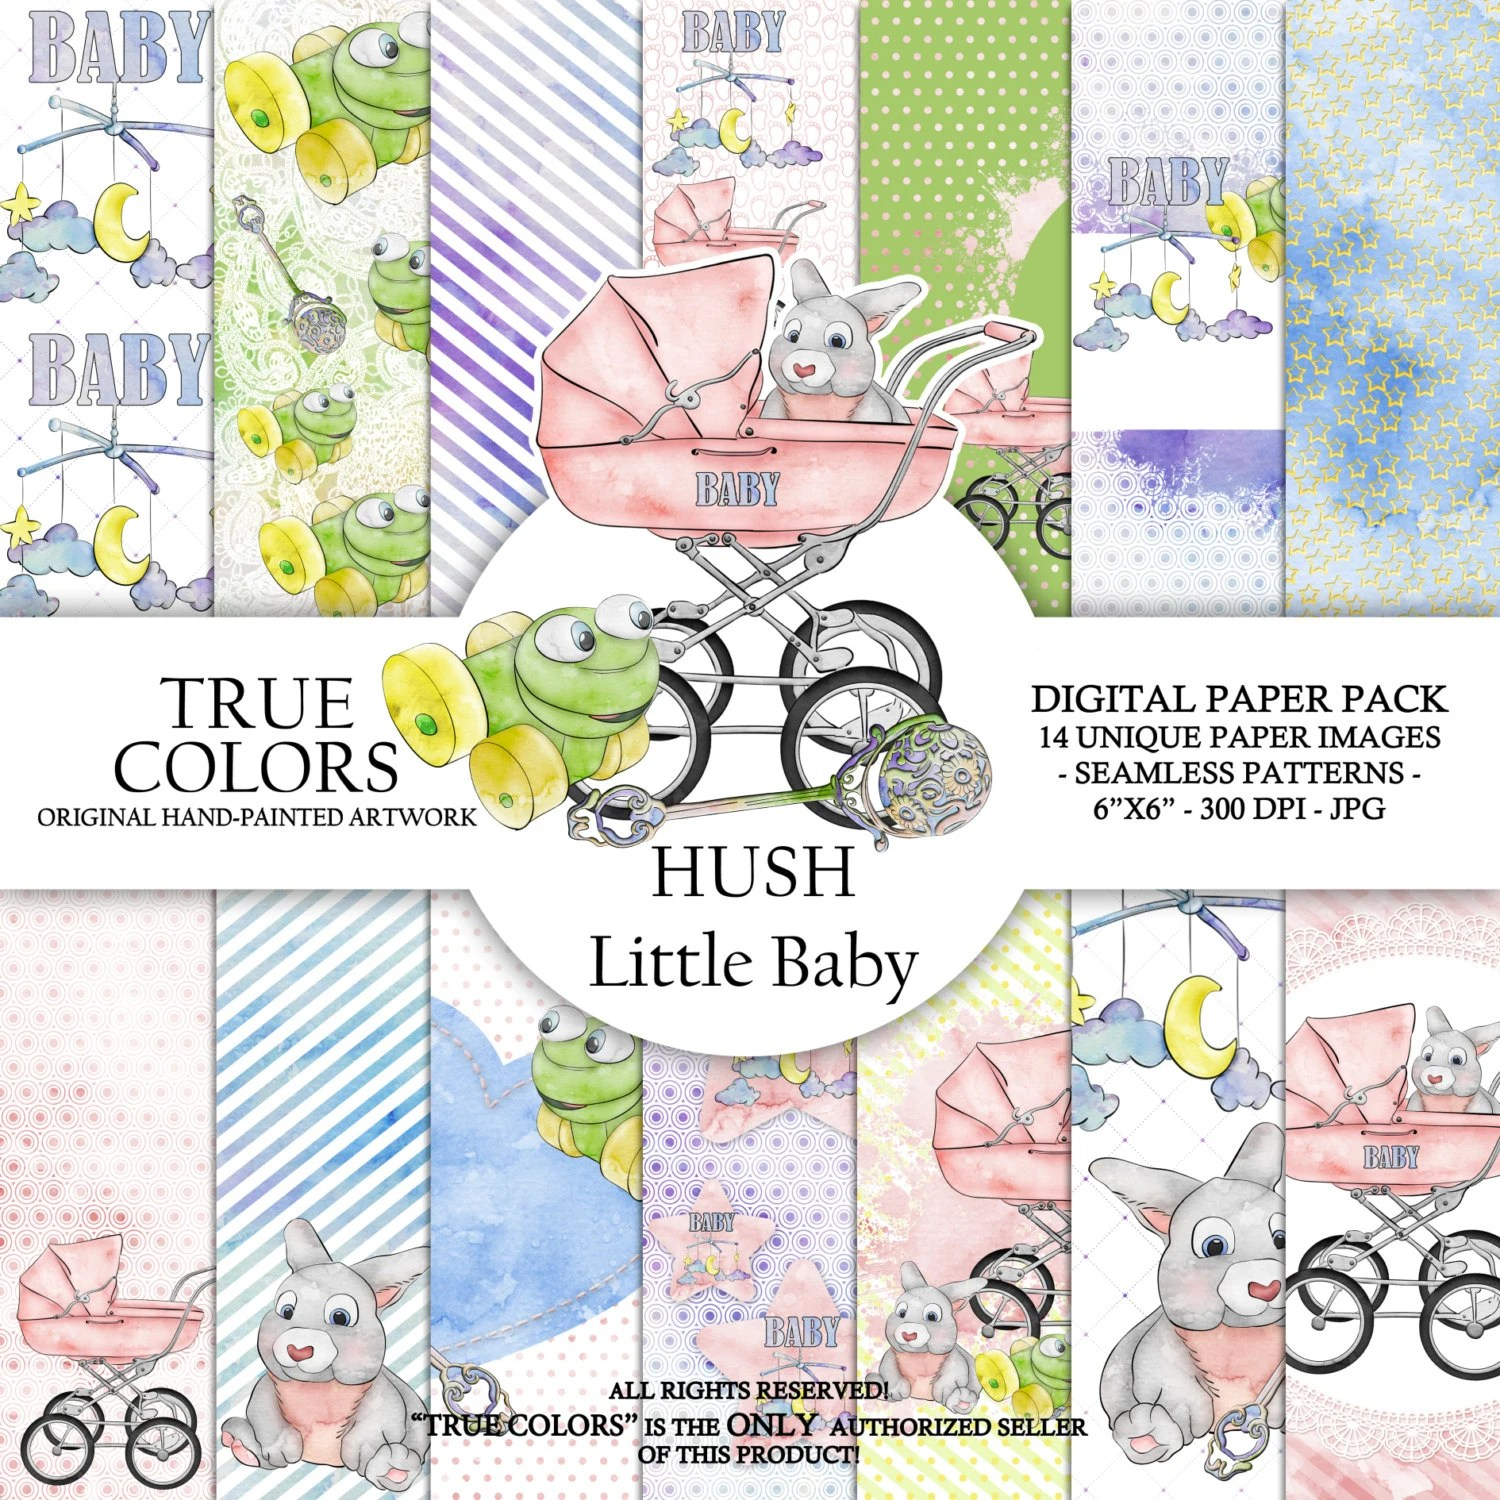 Hush Little Baby Digital Paper Pack Fashion Illustration Planner Stickers Supplies Seamless